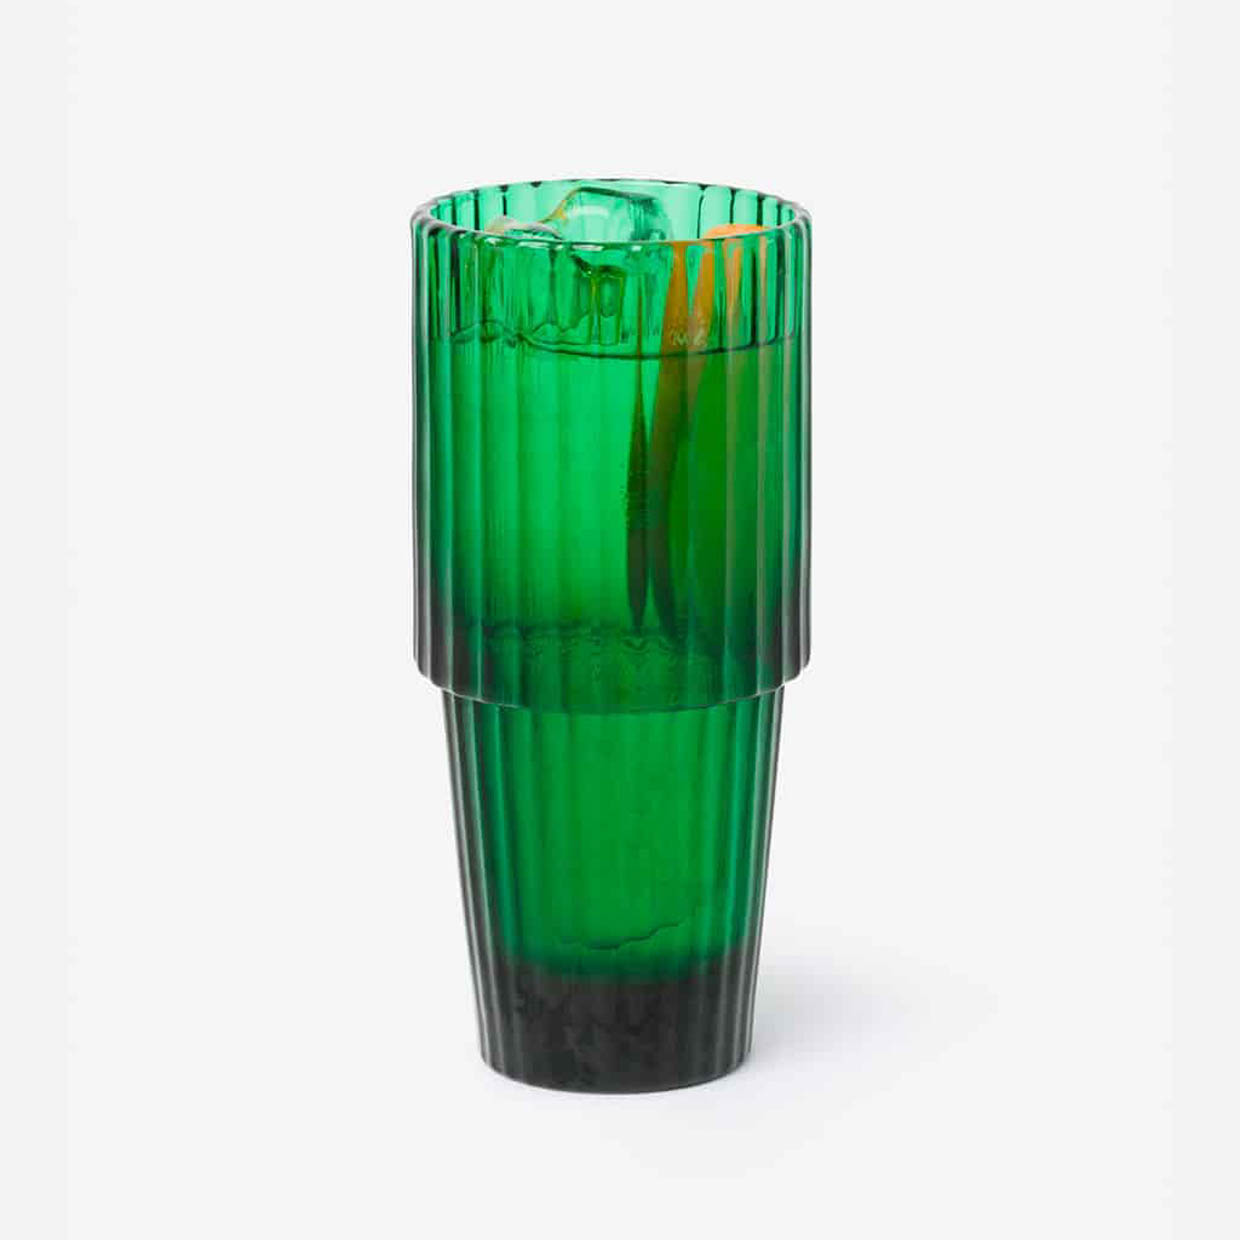 Saguaro Cactus Drink Glasses